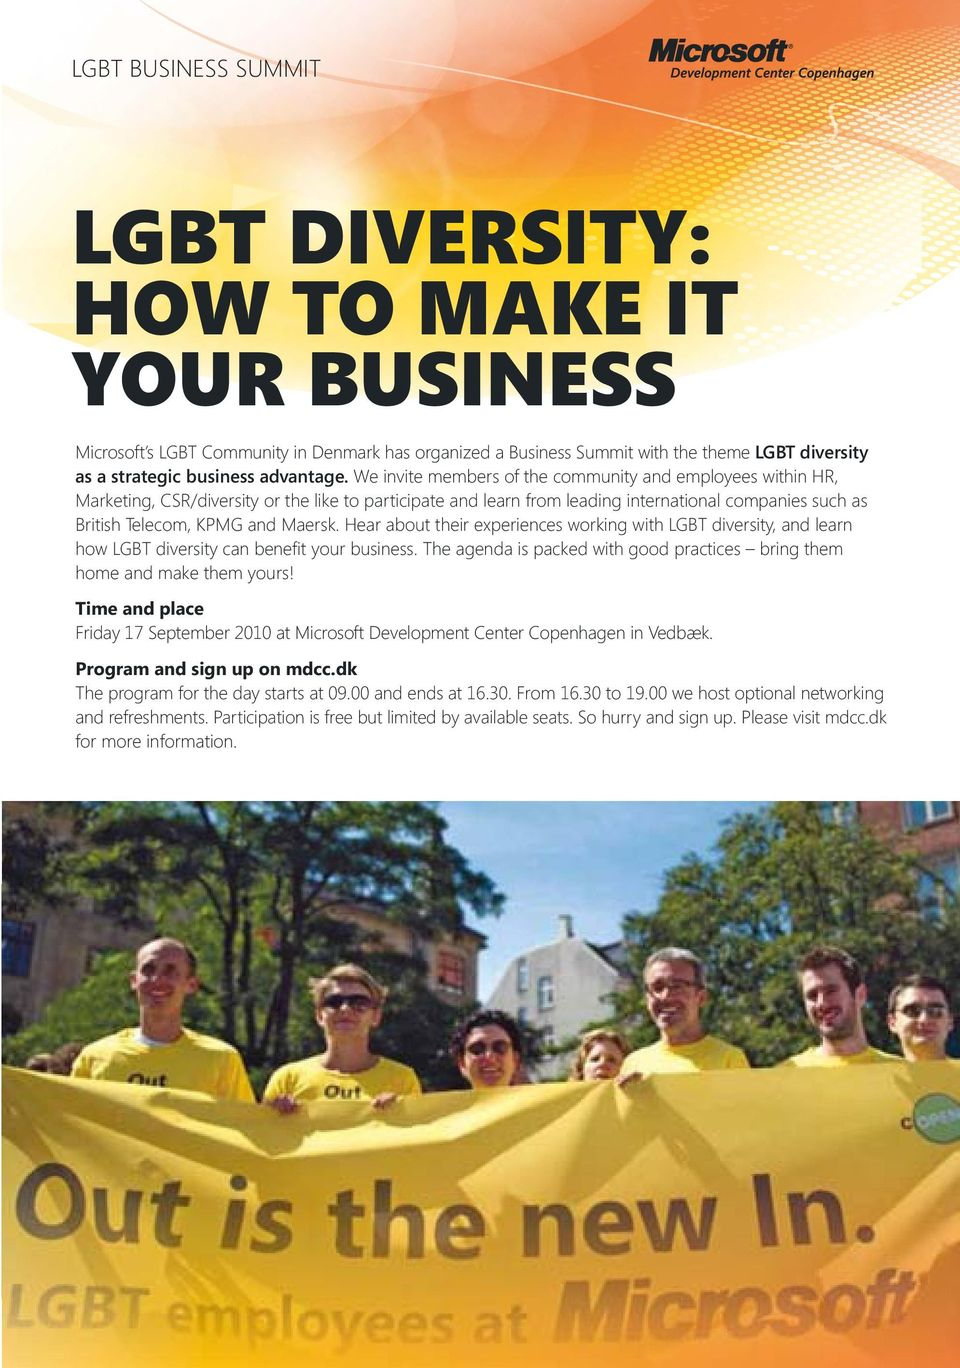 Hear about their experiences working with LGBT diversity, and learn how LGBT diversity can benefit your business. The agenda is packed with good practices bring them home and make them yours!